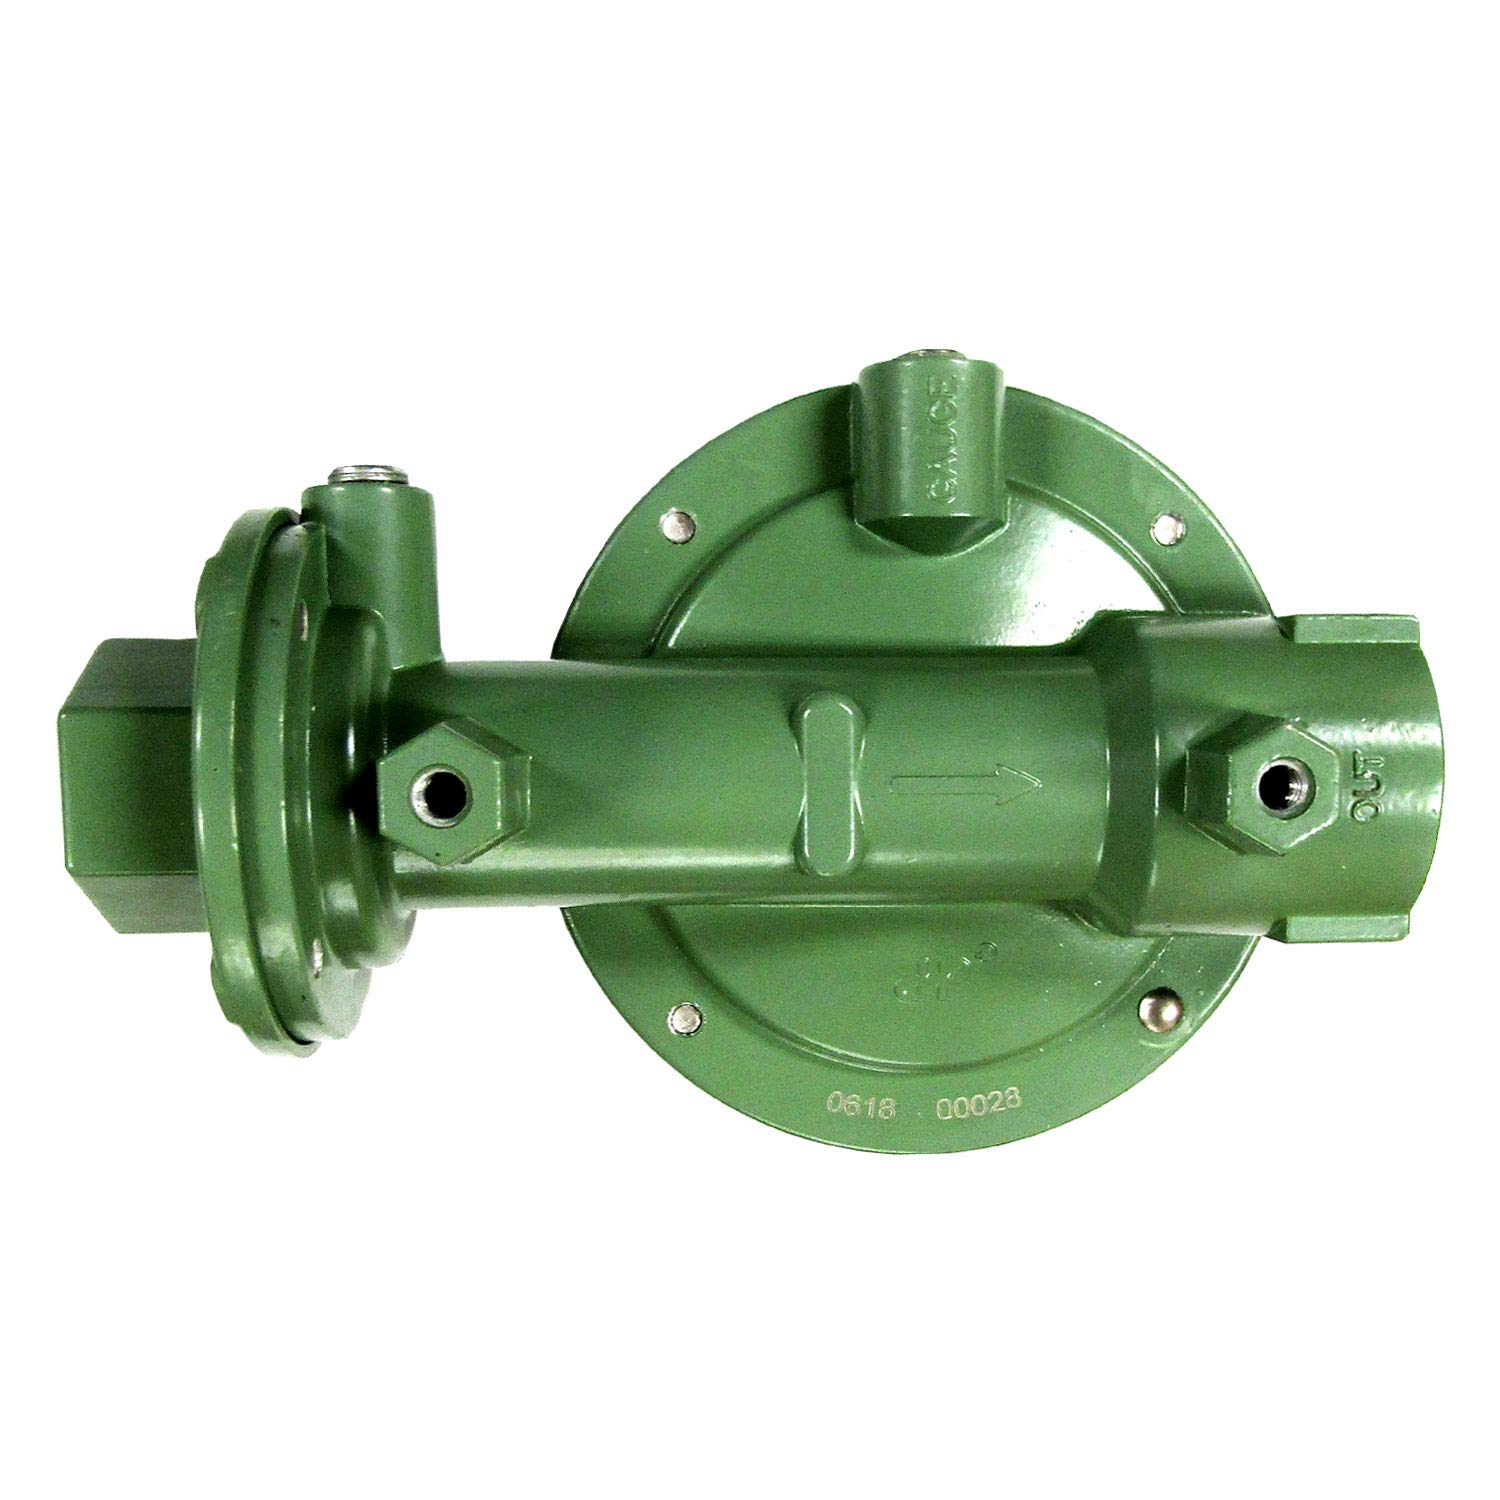 Fairview GR-92812C Compact Second Stage Low Pressure Propane Regulator by Fairview (Image #4)